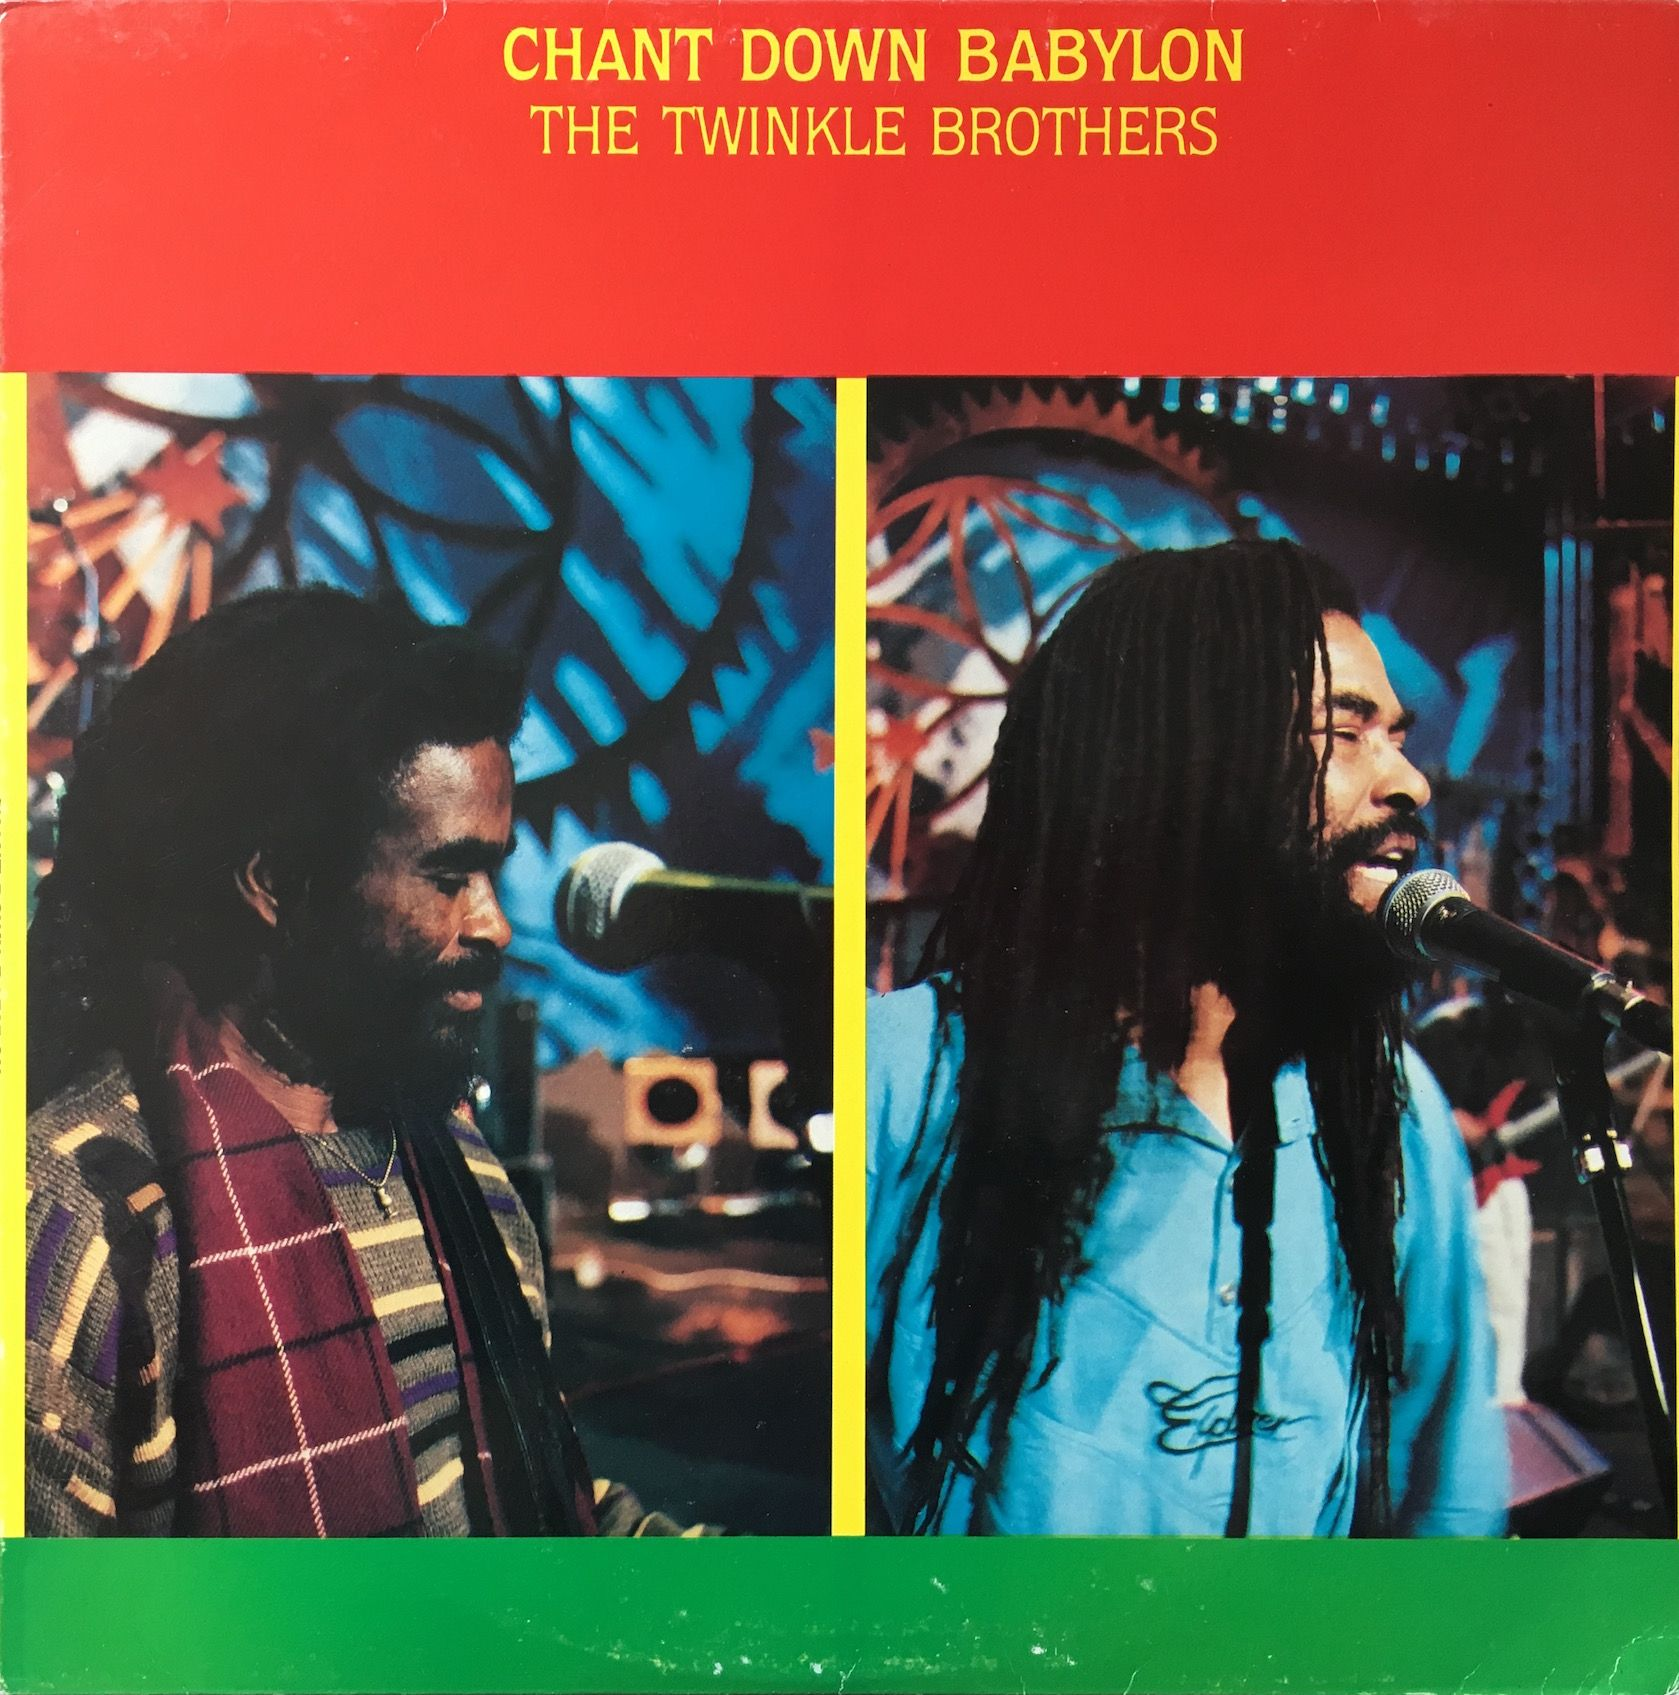 The Twinkle Brothers Chant Down Babylon Twinkle Twinkle Babylon Brother